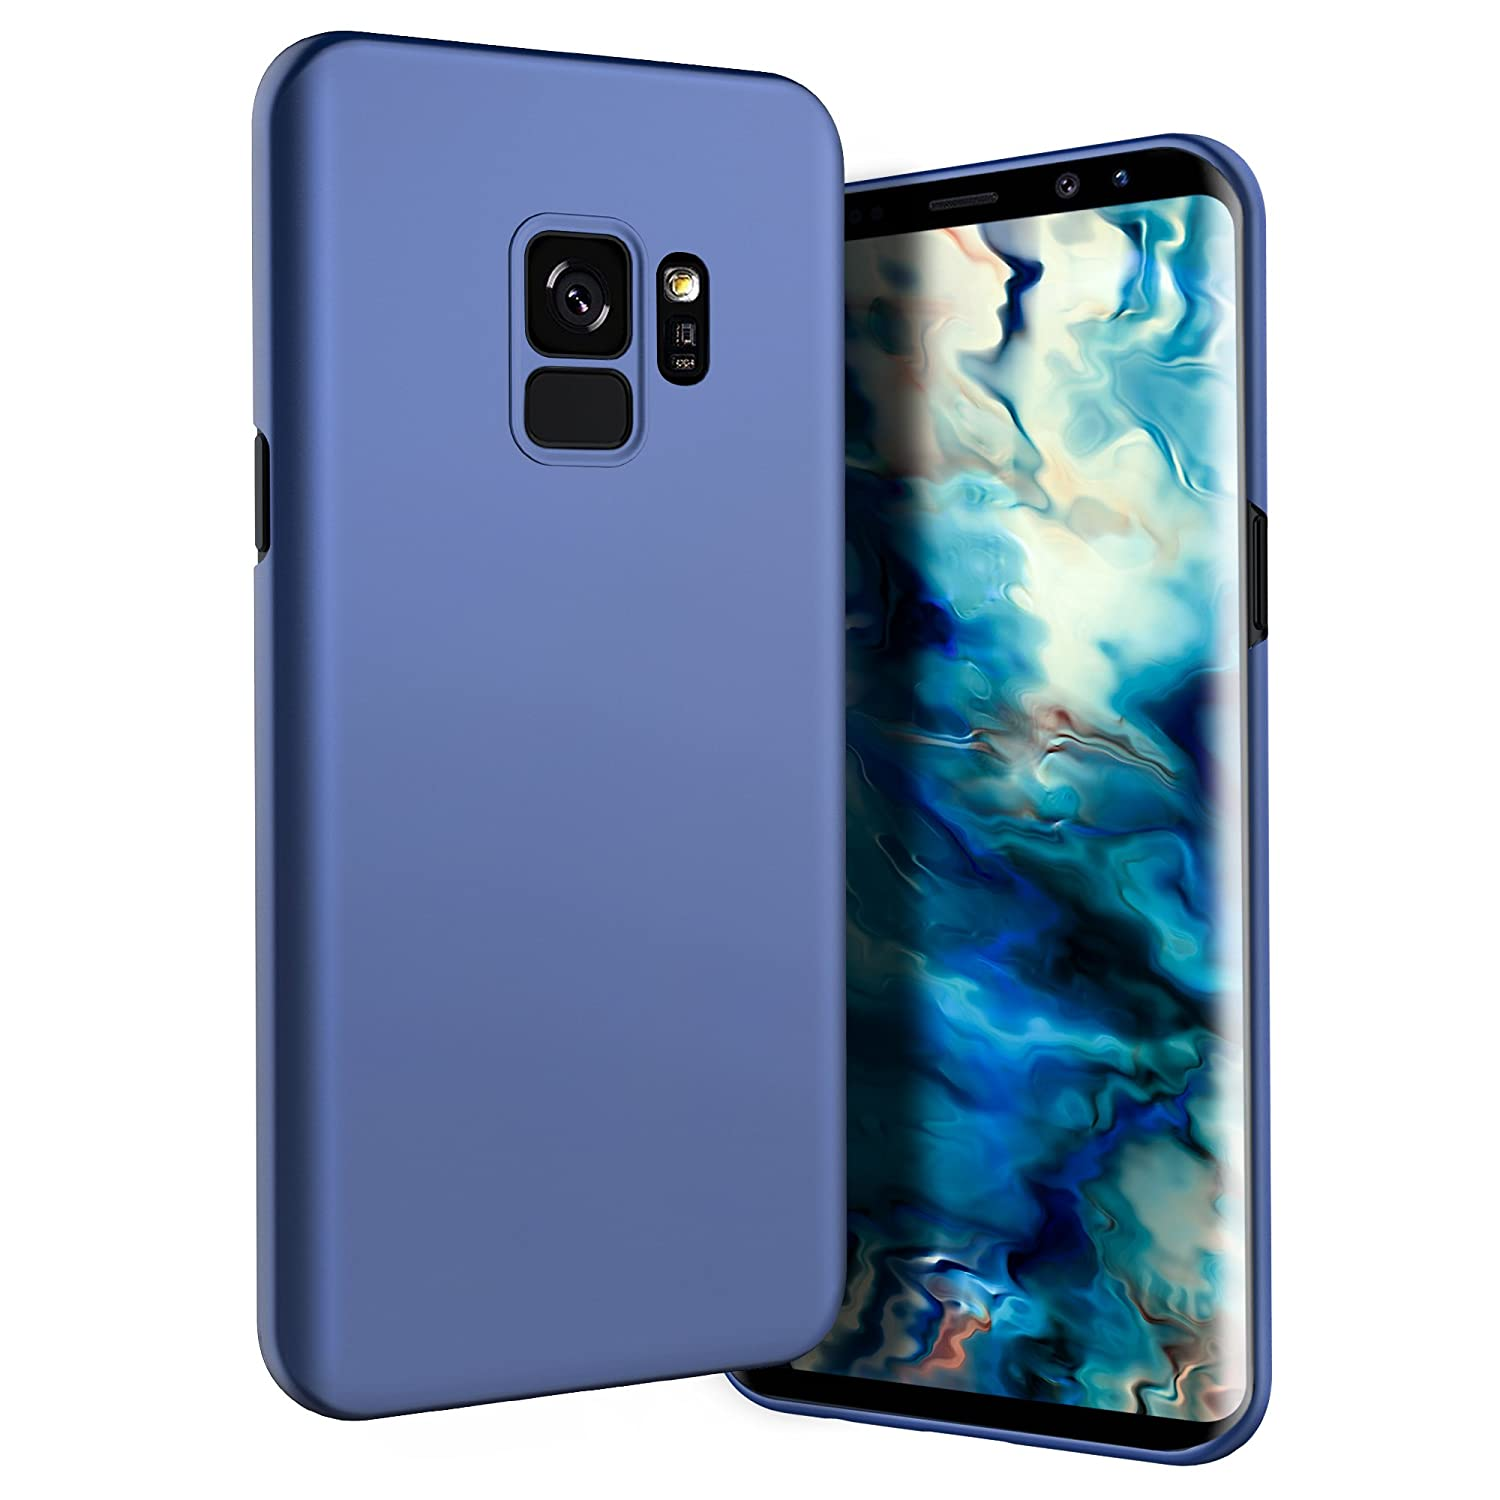 Galaxy S9 Case, Belk Ultra Slim Thin Snug-Fit Scratch Resistant Premium PC Hard Protective Cover with Matte Finish Coating for Samsung Galaxy S9, Blue